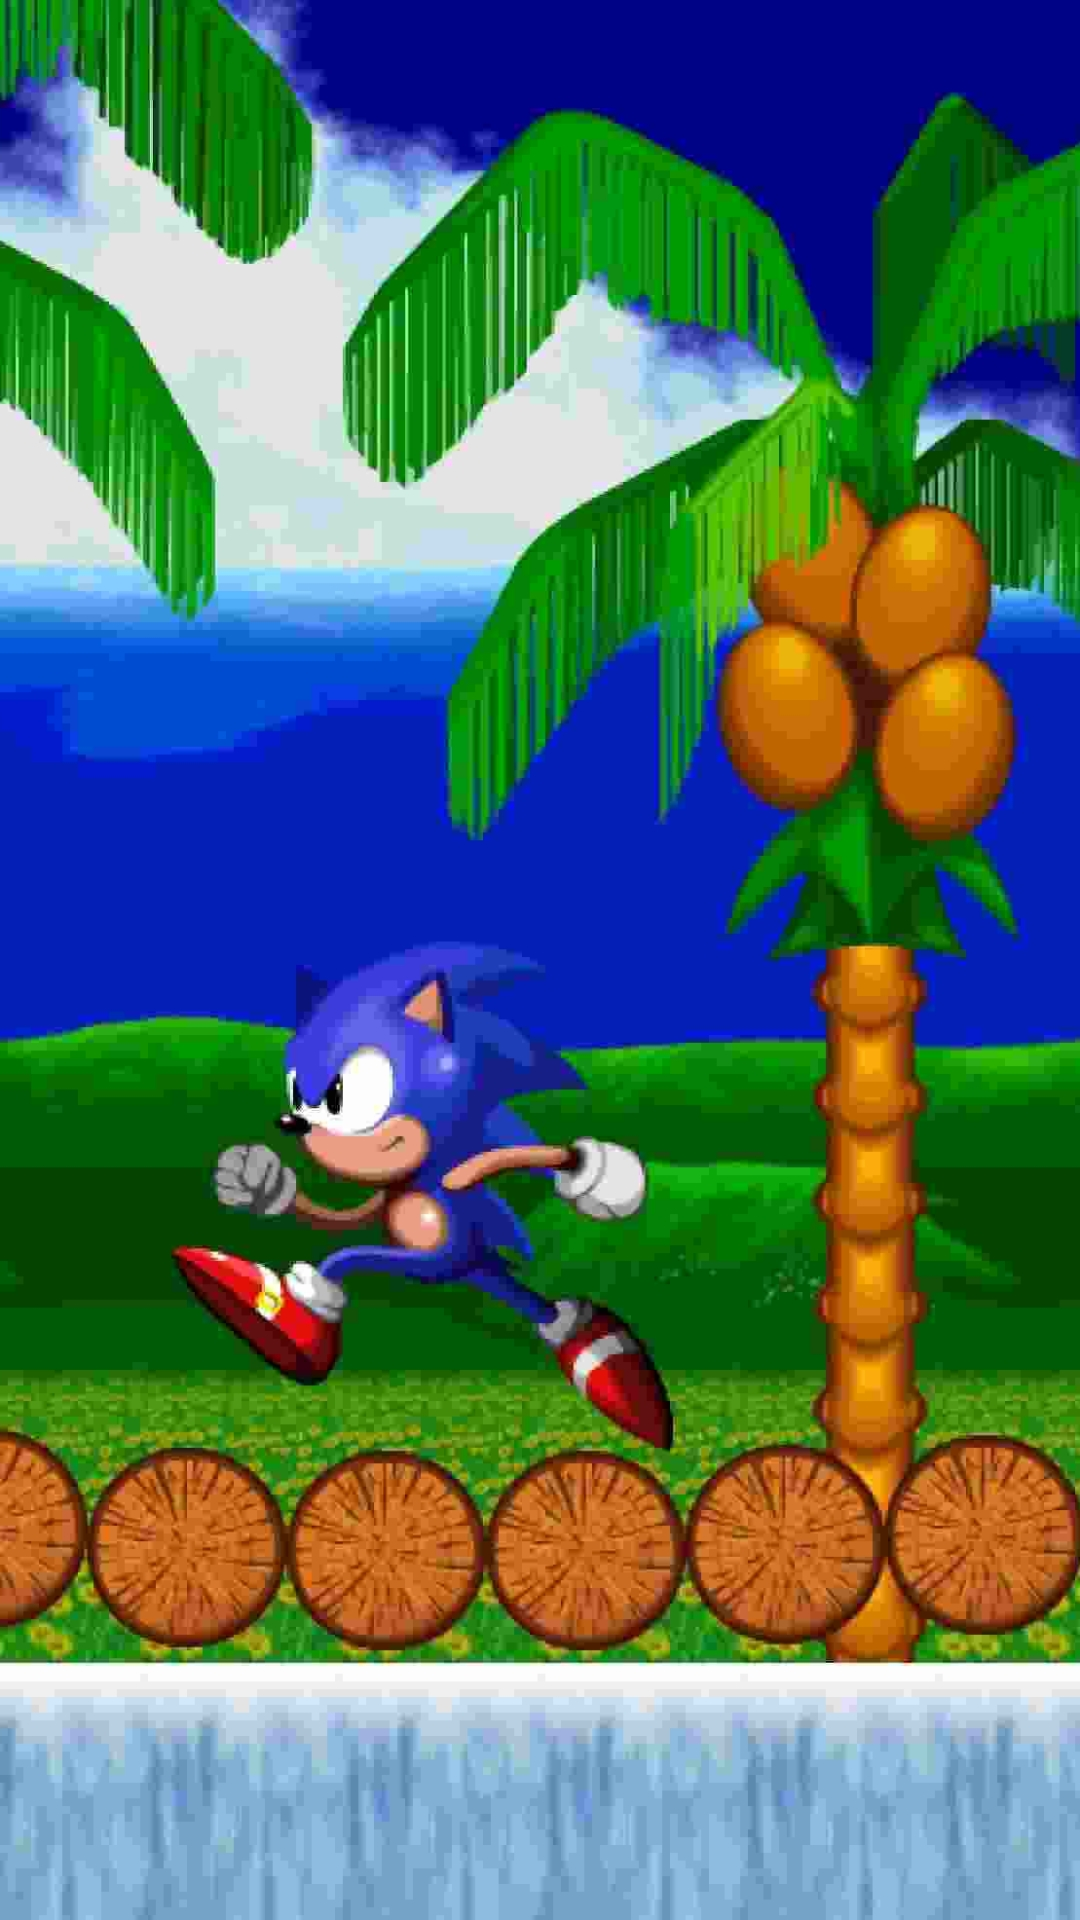 Video Game Sonic The Hedgehog 2 1080x1920 Wallpaper Id 699610 Mobile Abyss